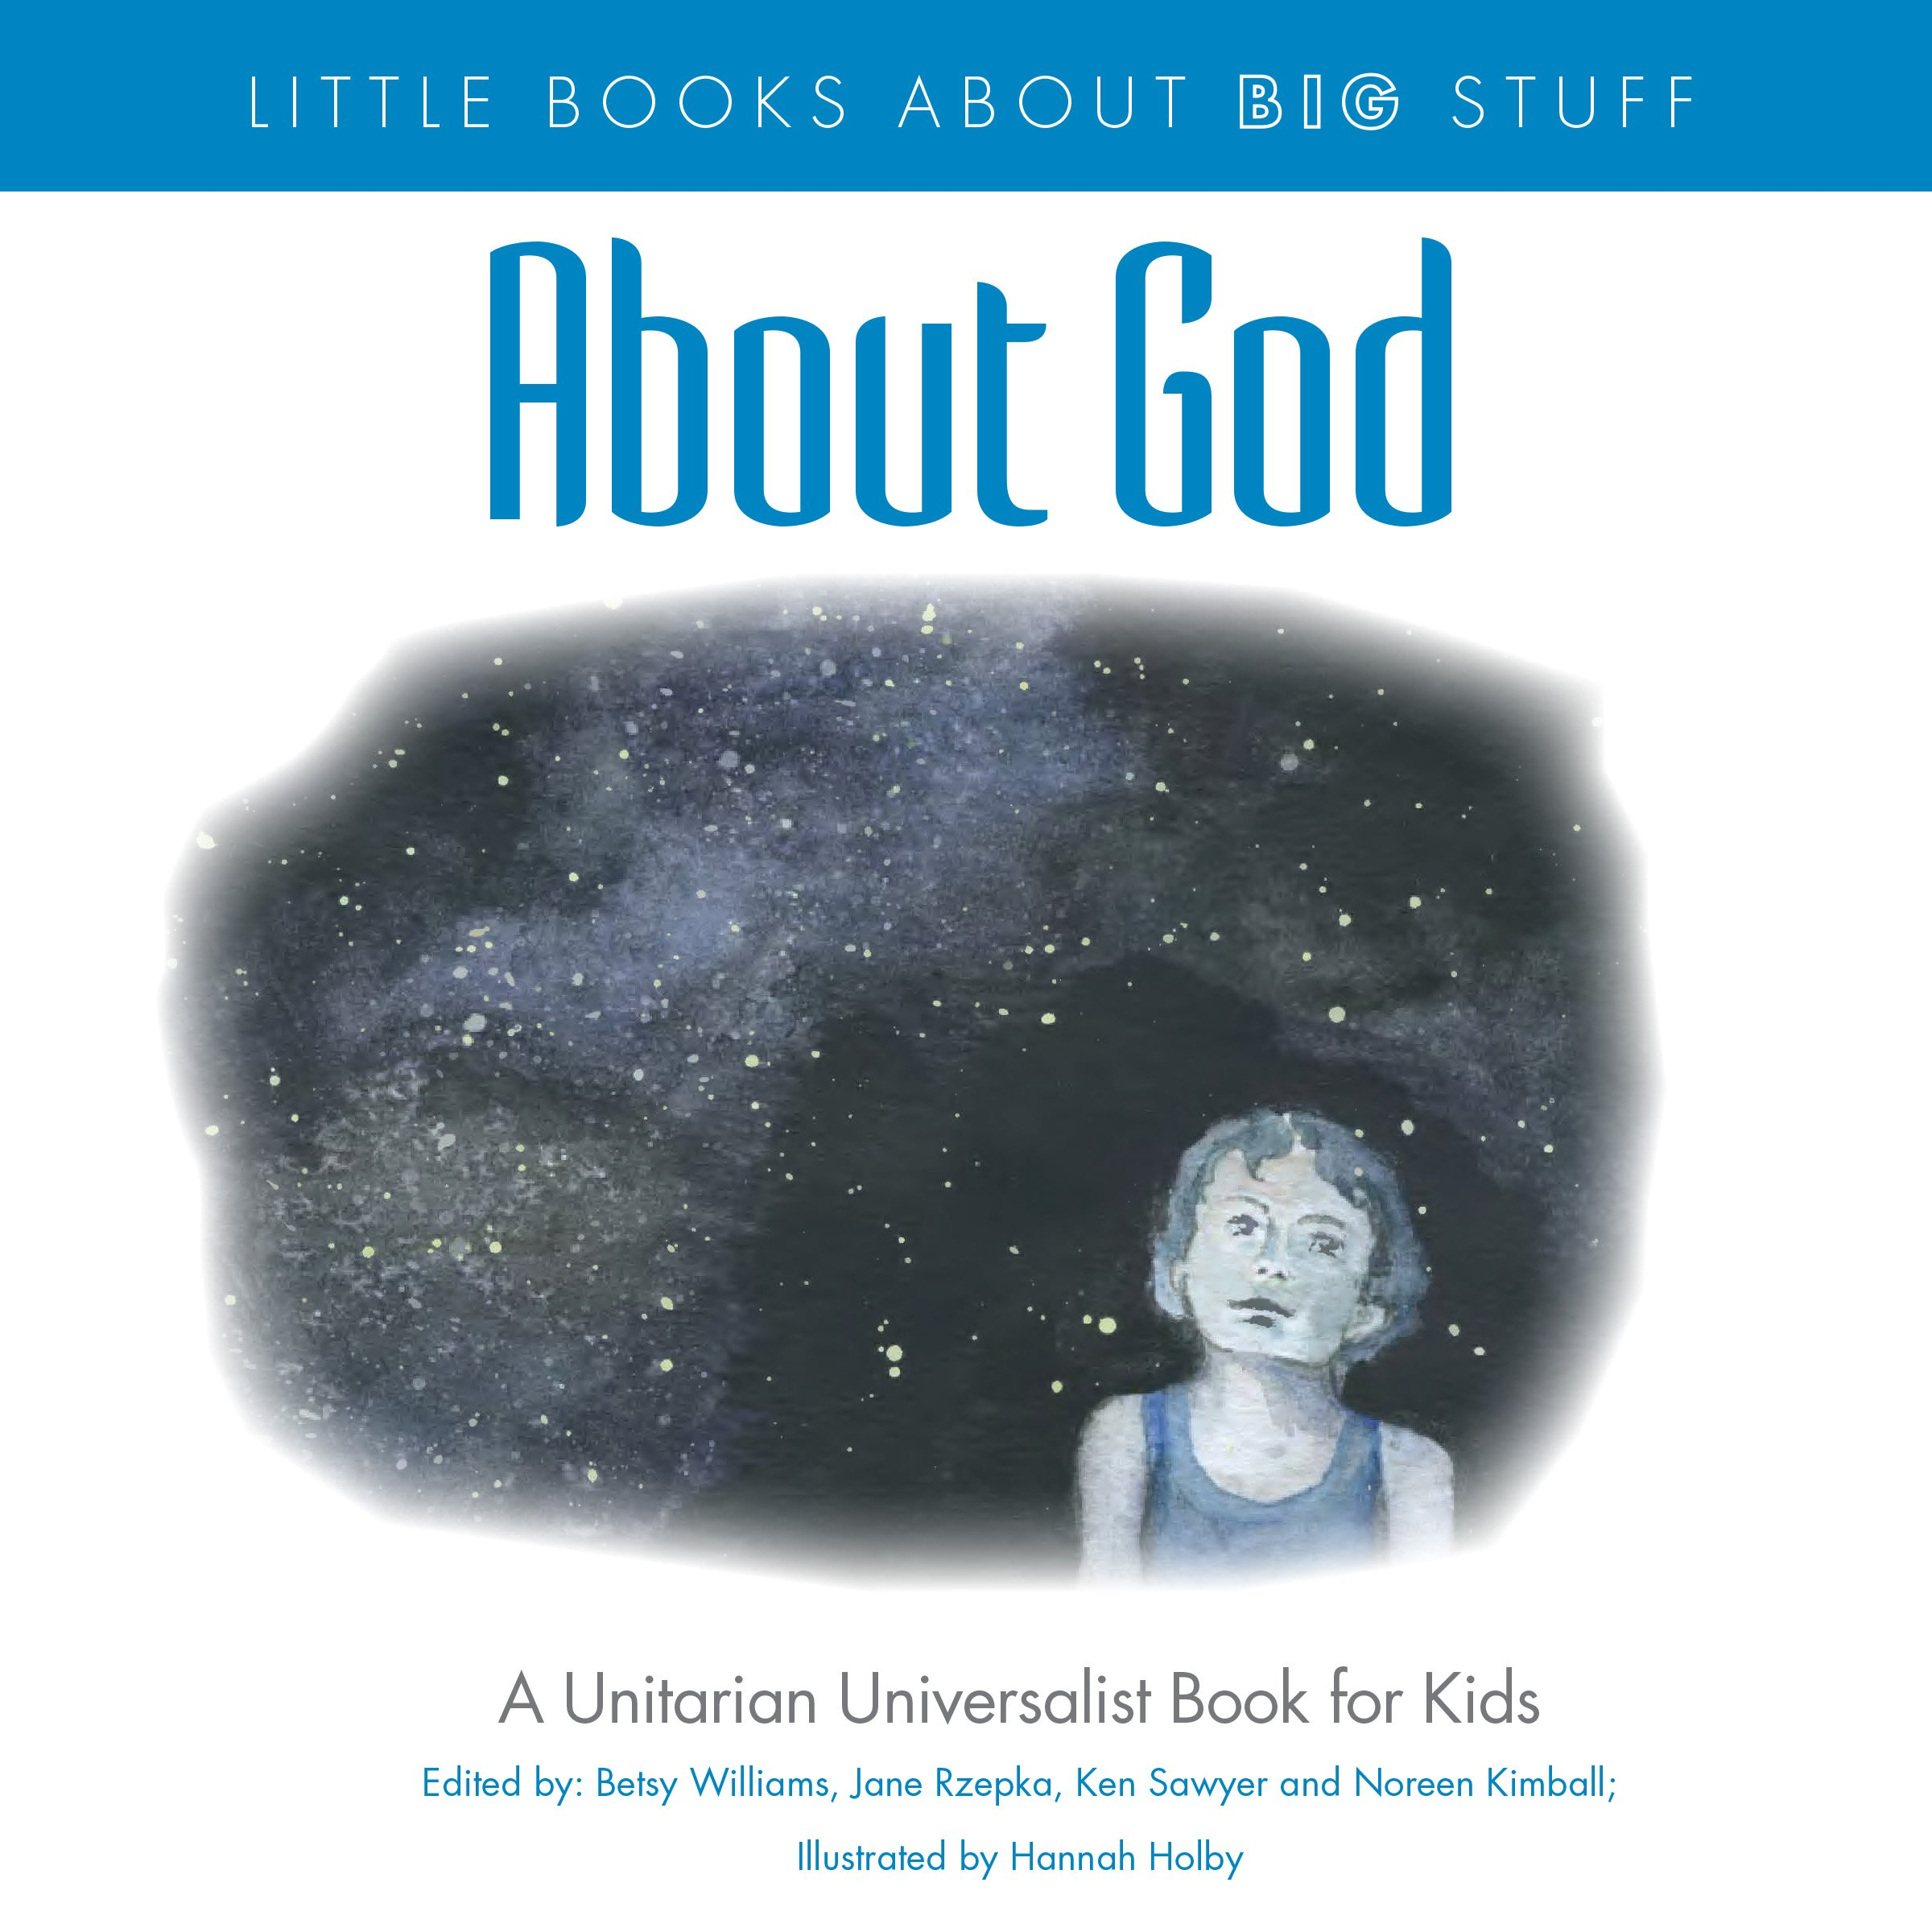 Download Little Books About Big Stuff: About God (2013-05-03) ebook